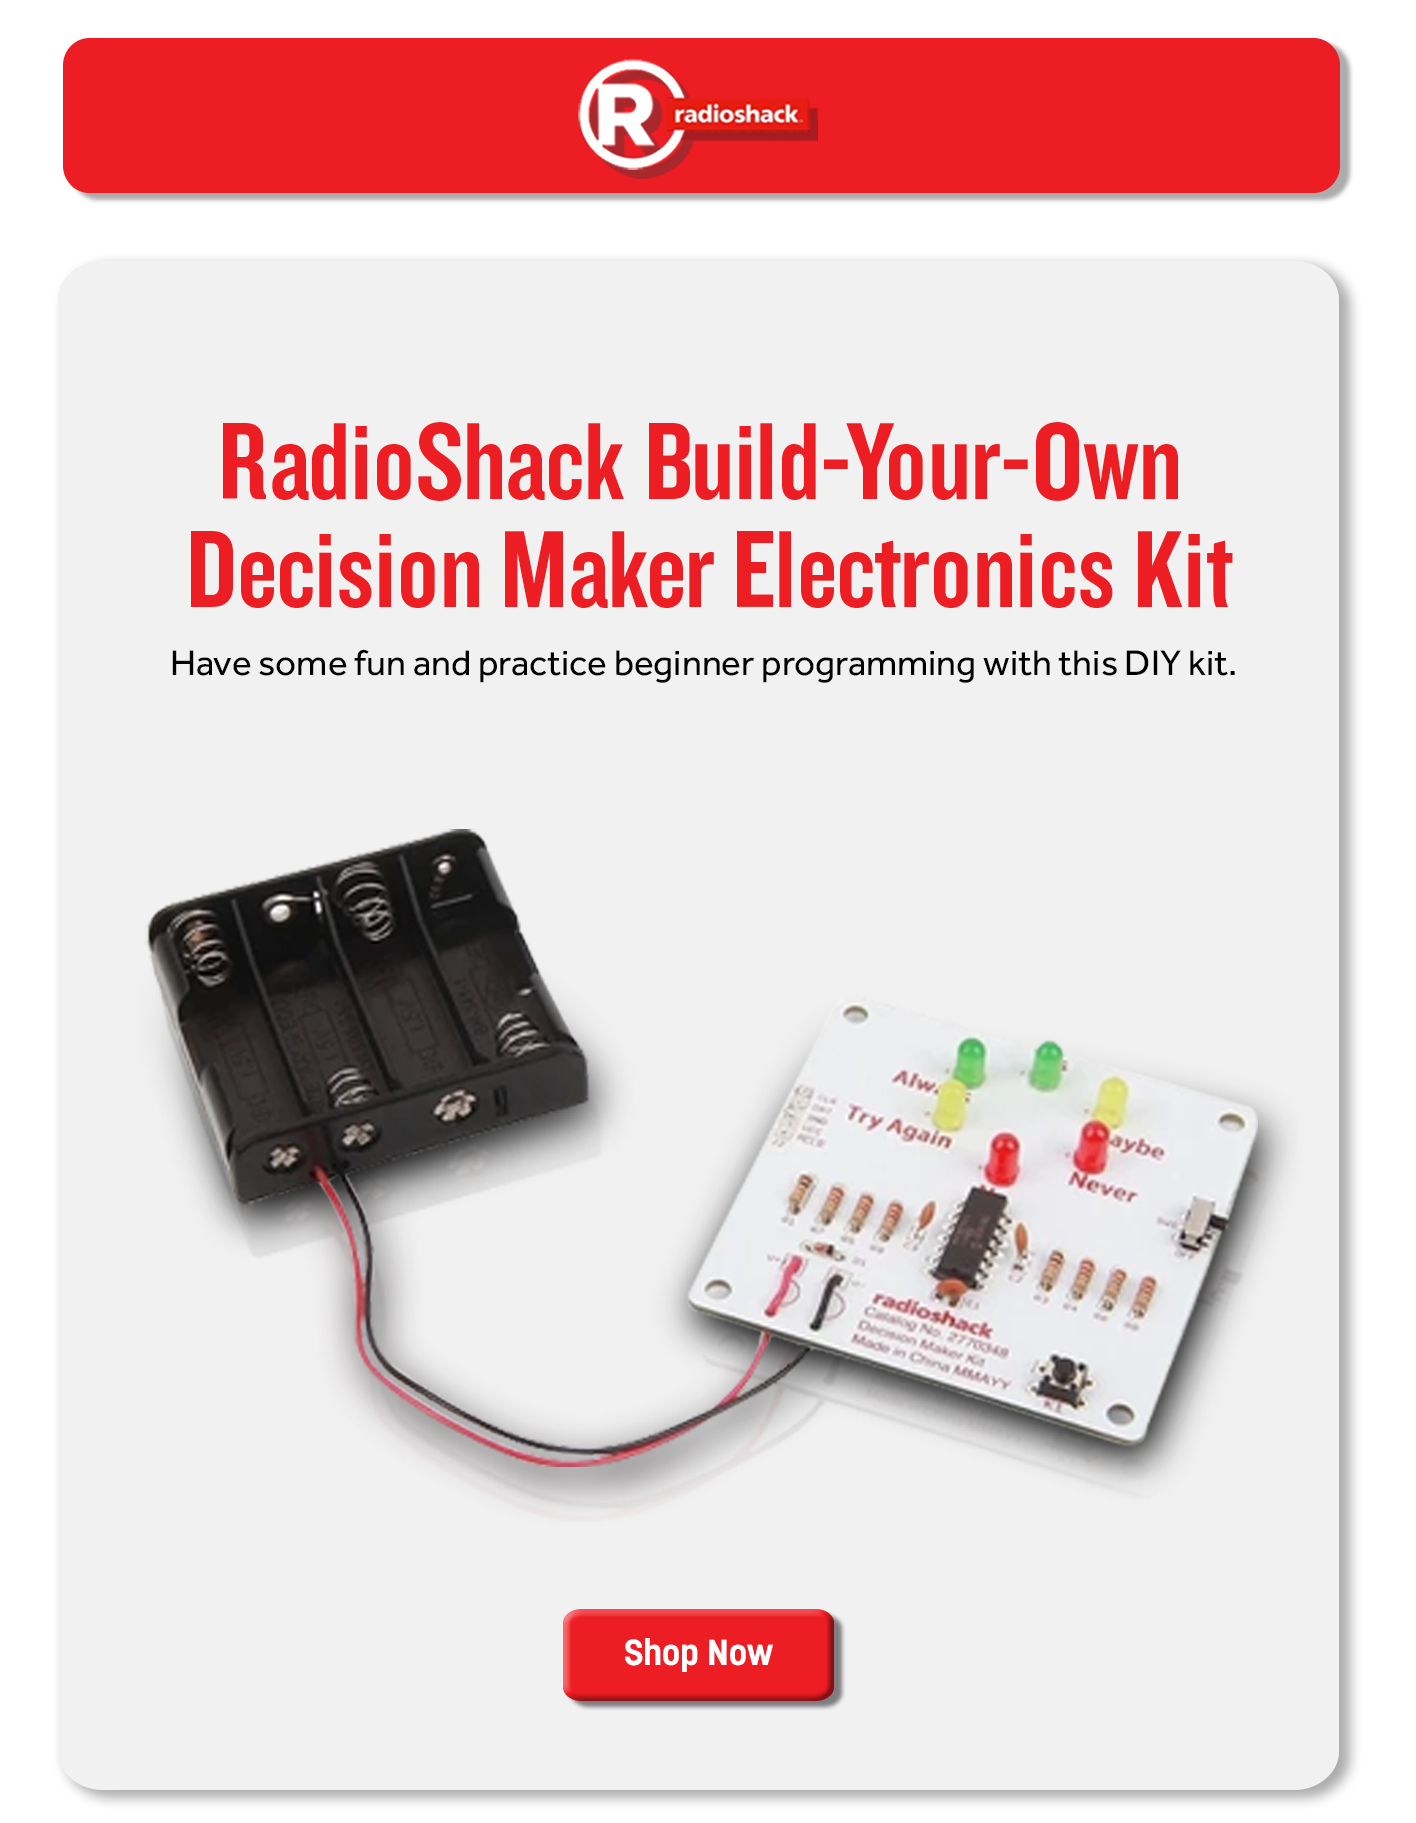 RadioShack Build-Your-Own Decision Maker Electronics Kit